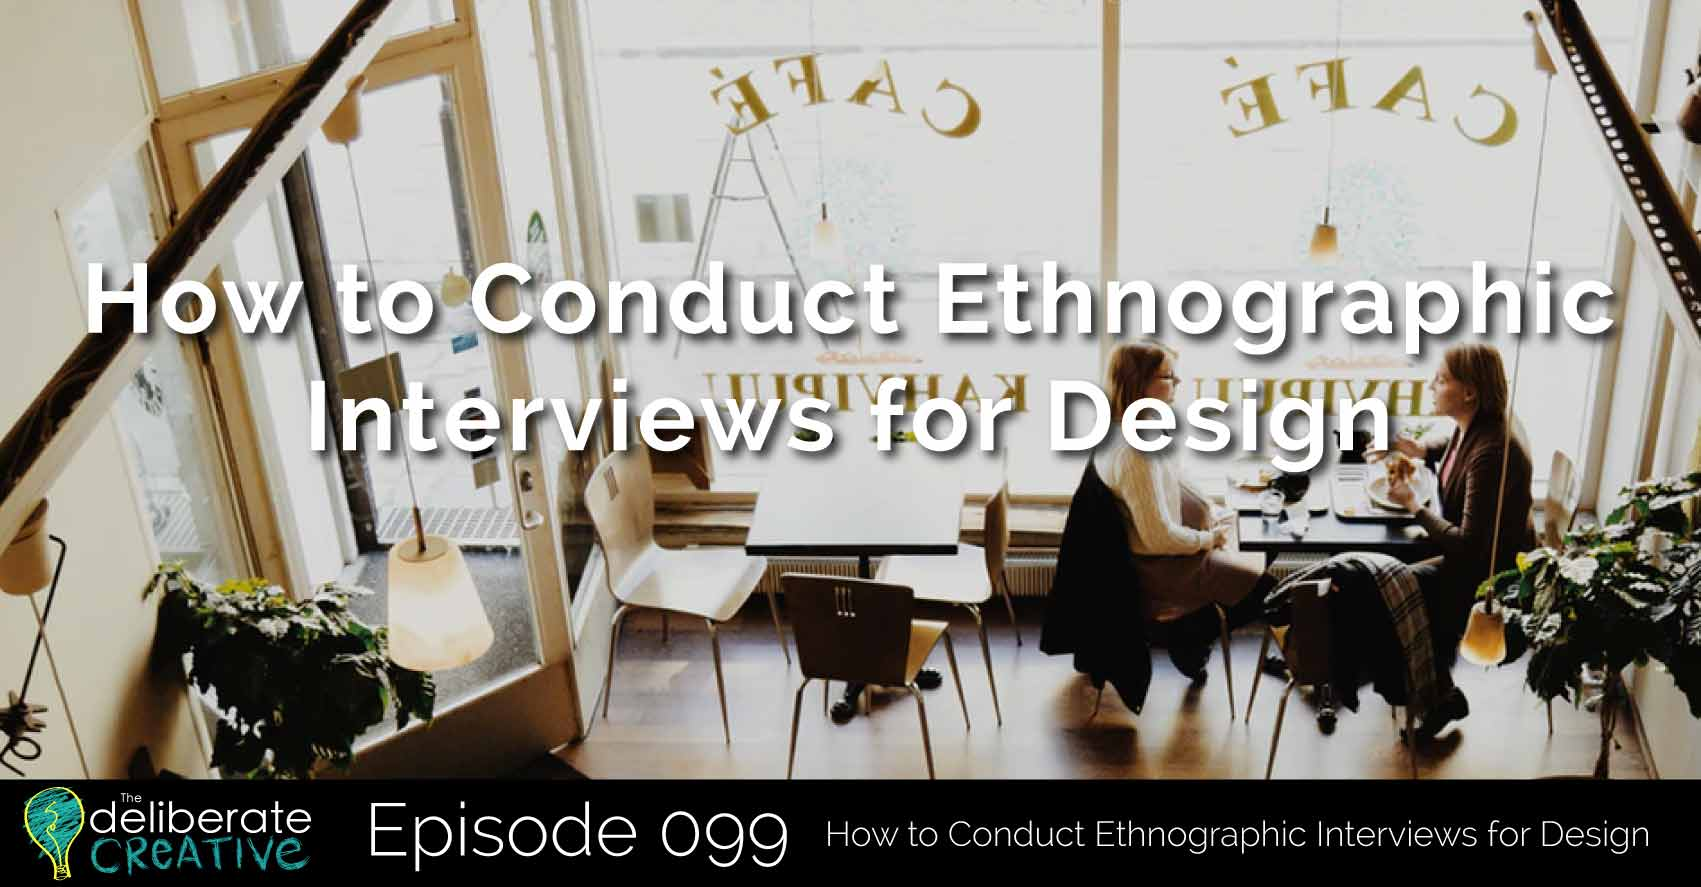 The Deliberate Creative Podcast Episode 99: How to Conduct Ethnographic Interviews for Design